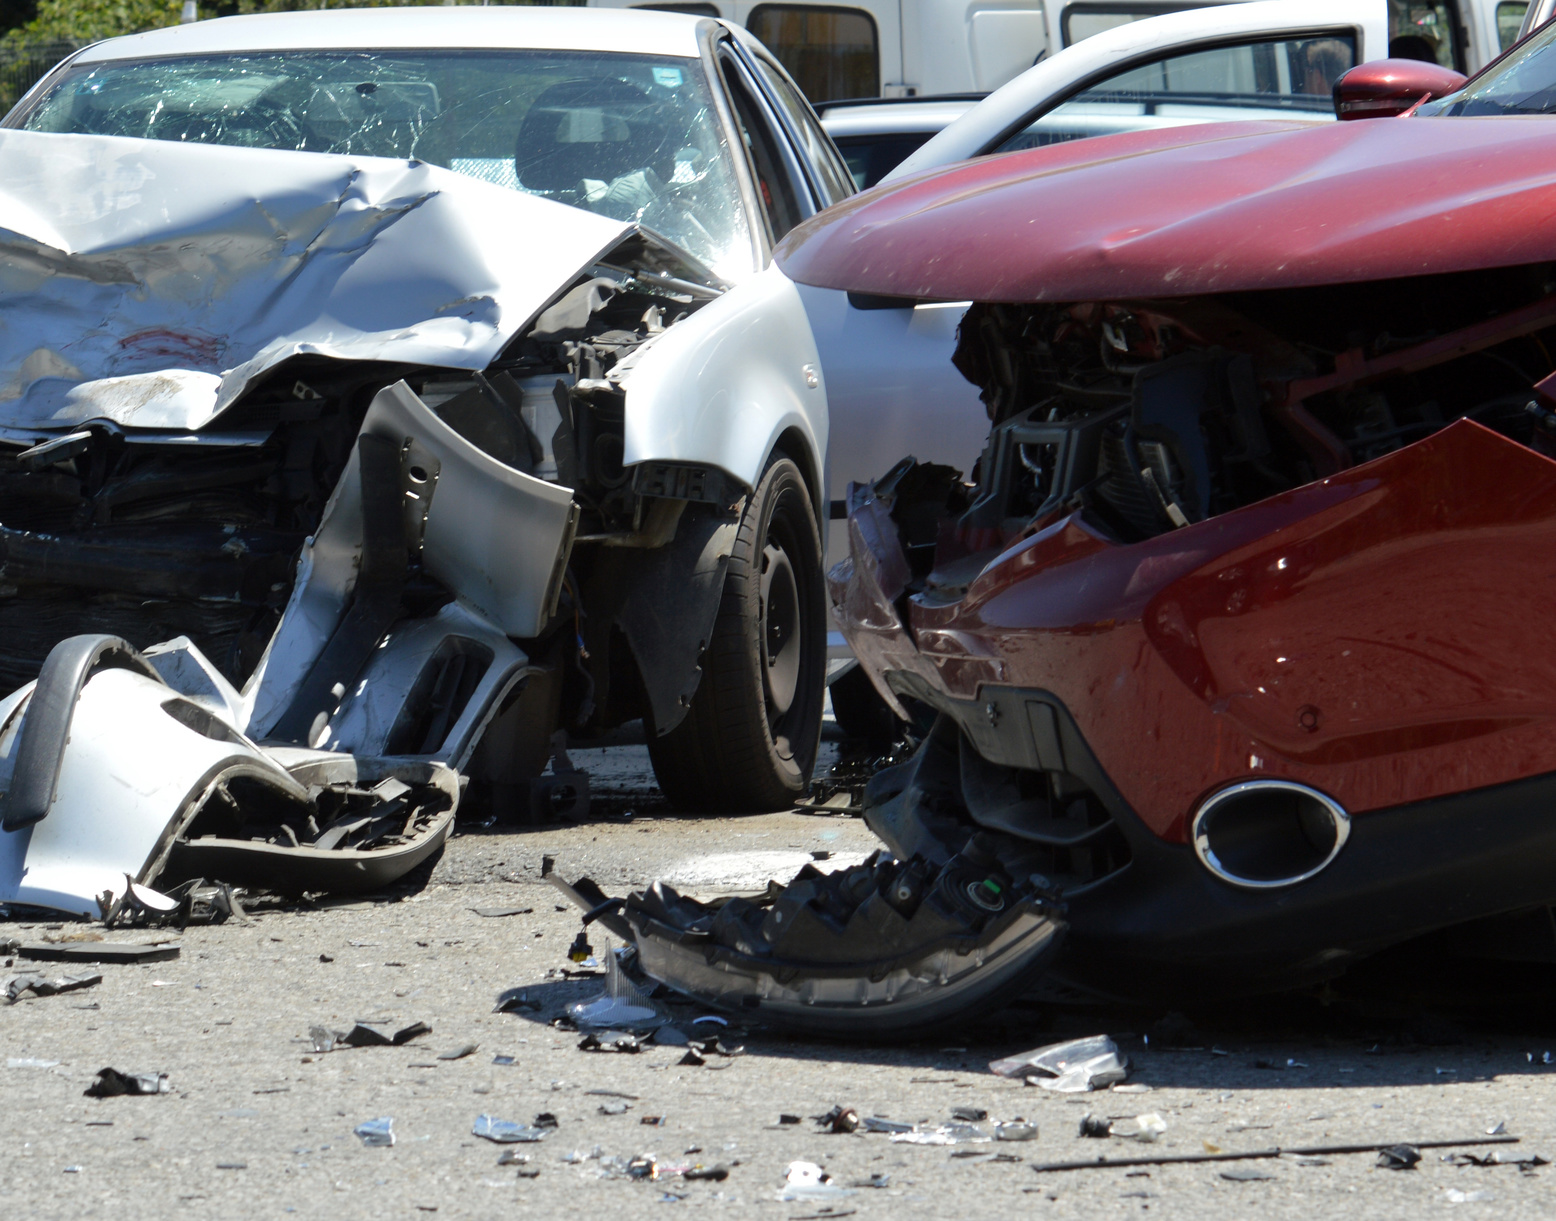 What You Should Do After An Auto Collision Miracle Body and Paint San Antonio Texas